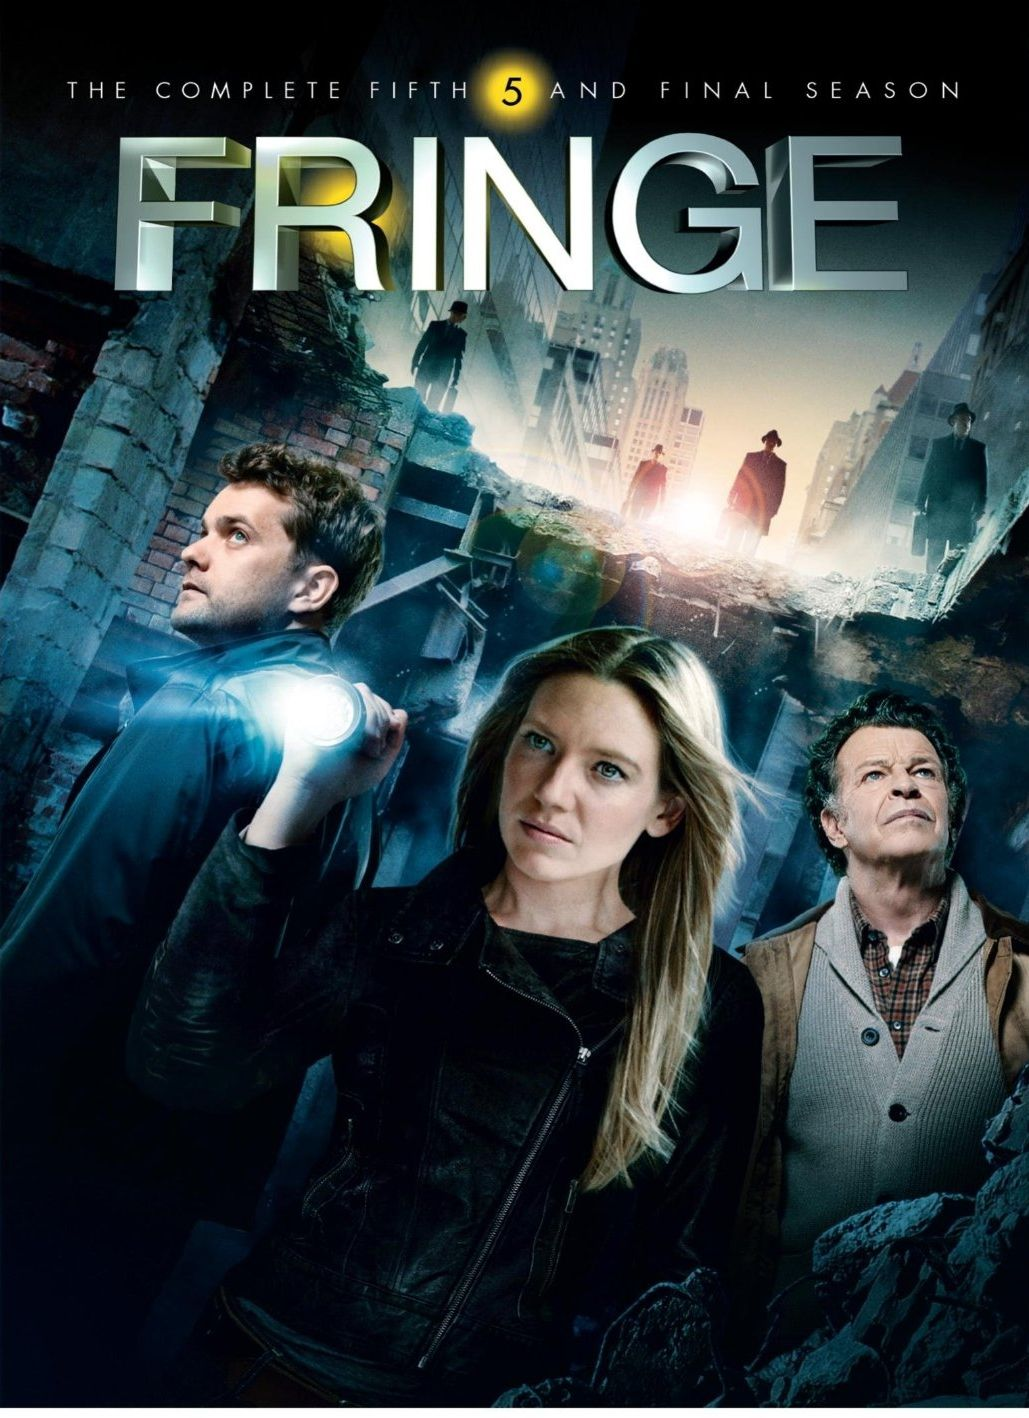 Fringe Hd 1080p Serie Empire E 1080p